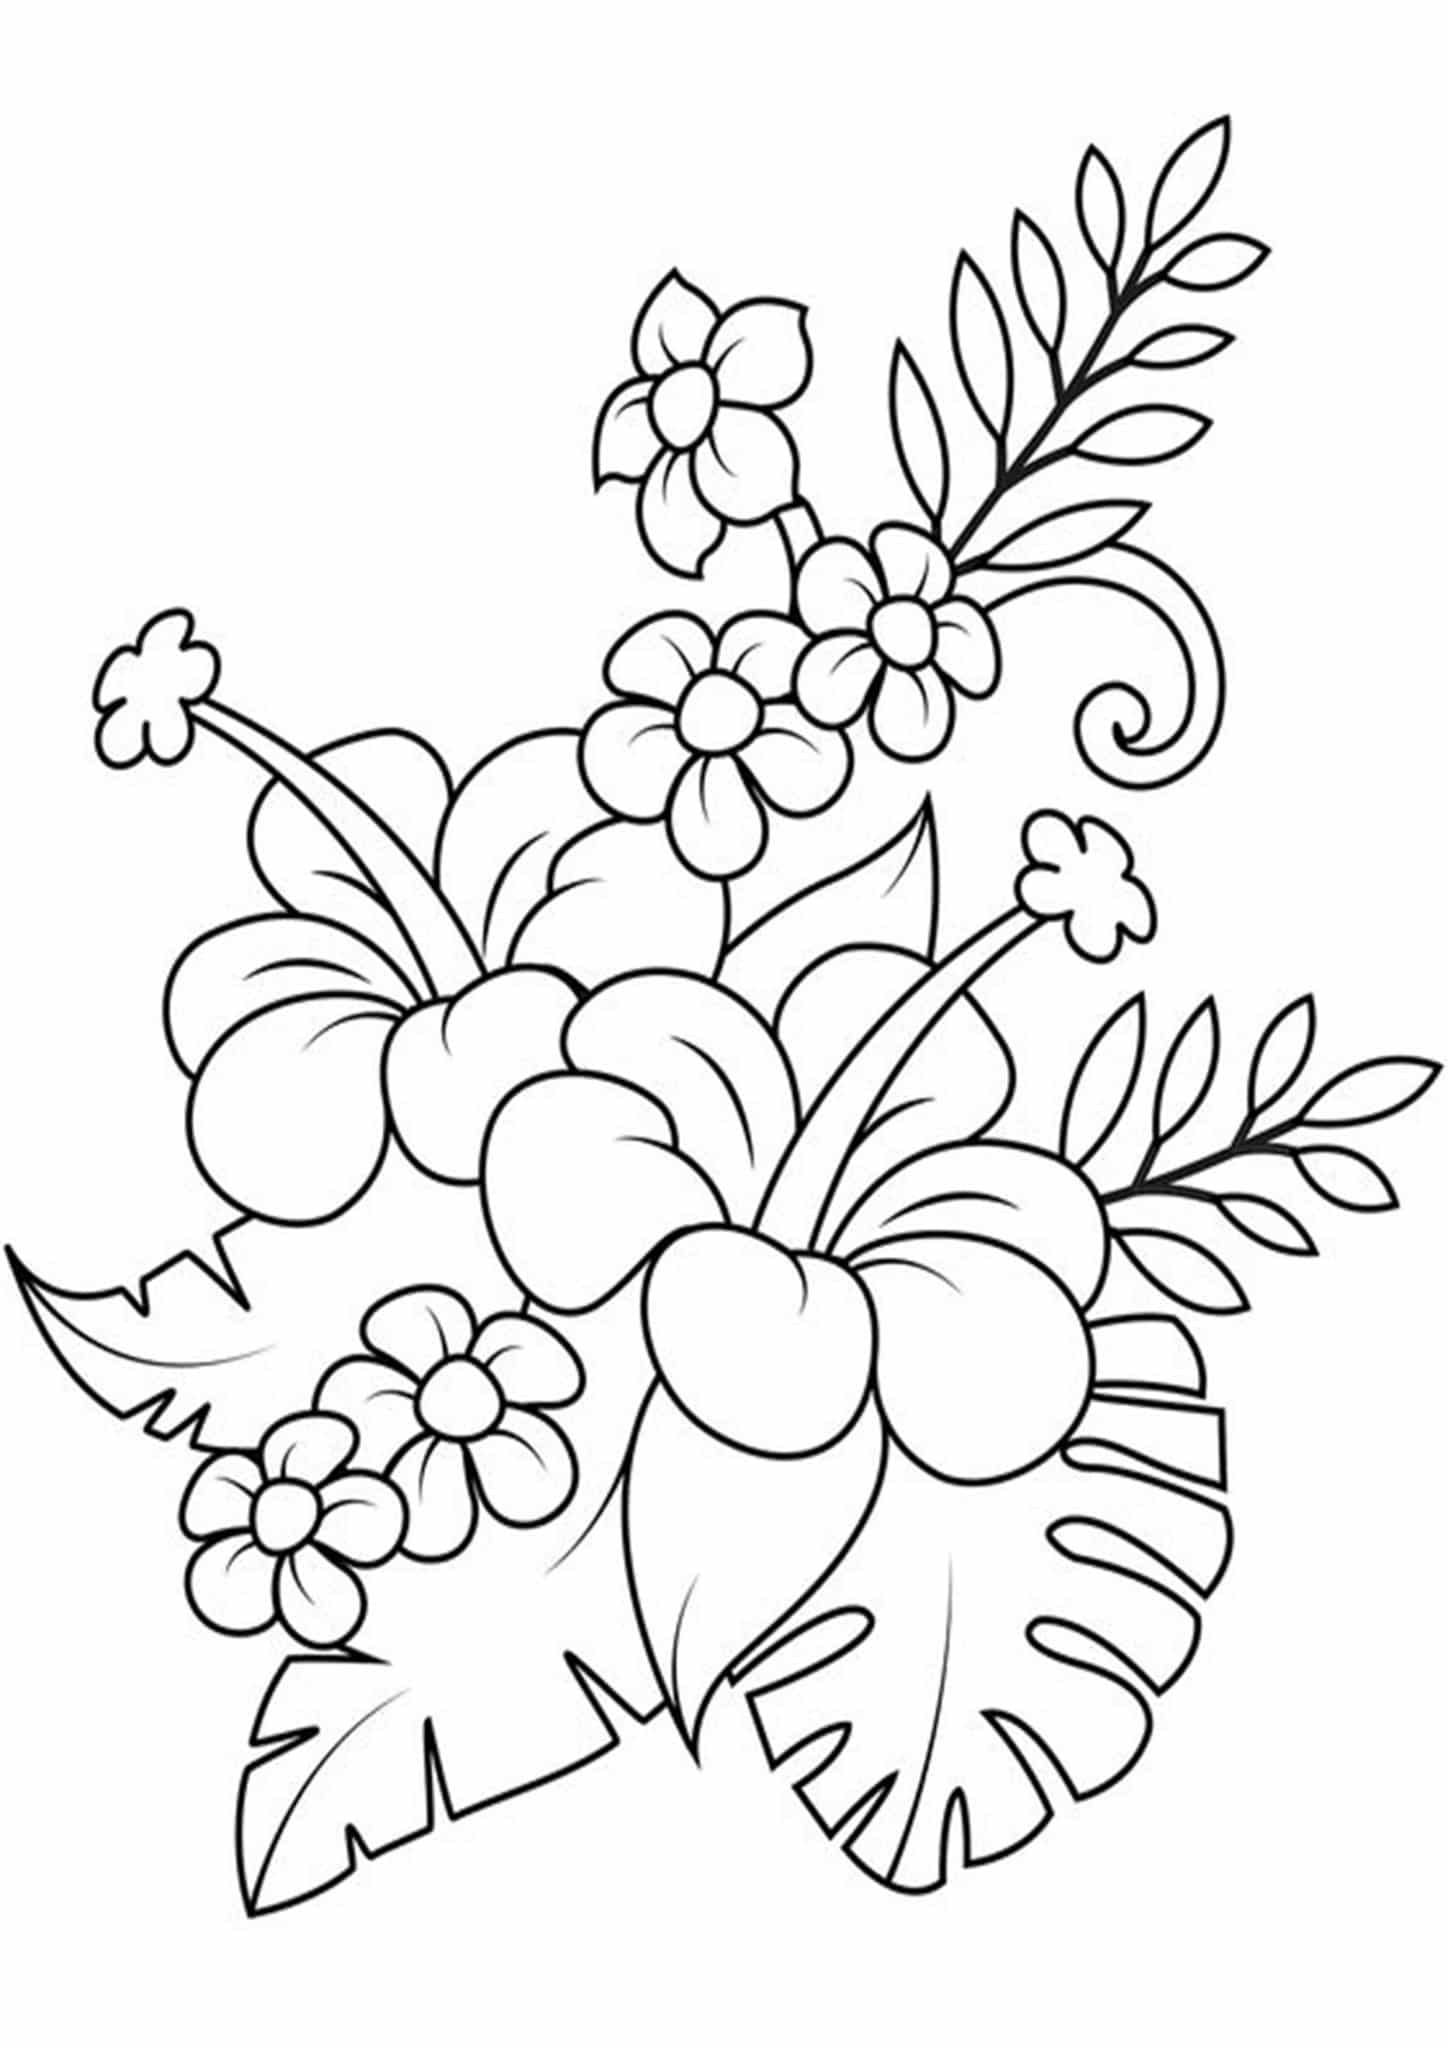 color page flower roses flowers coloring page free printable coloring pages page flower color